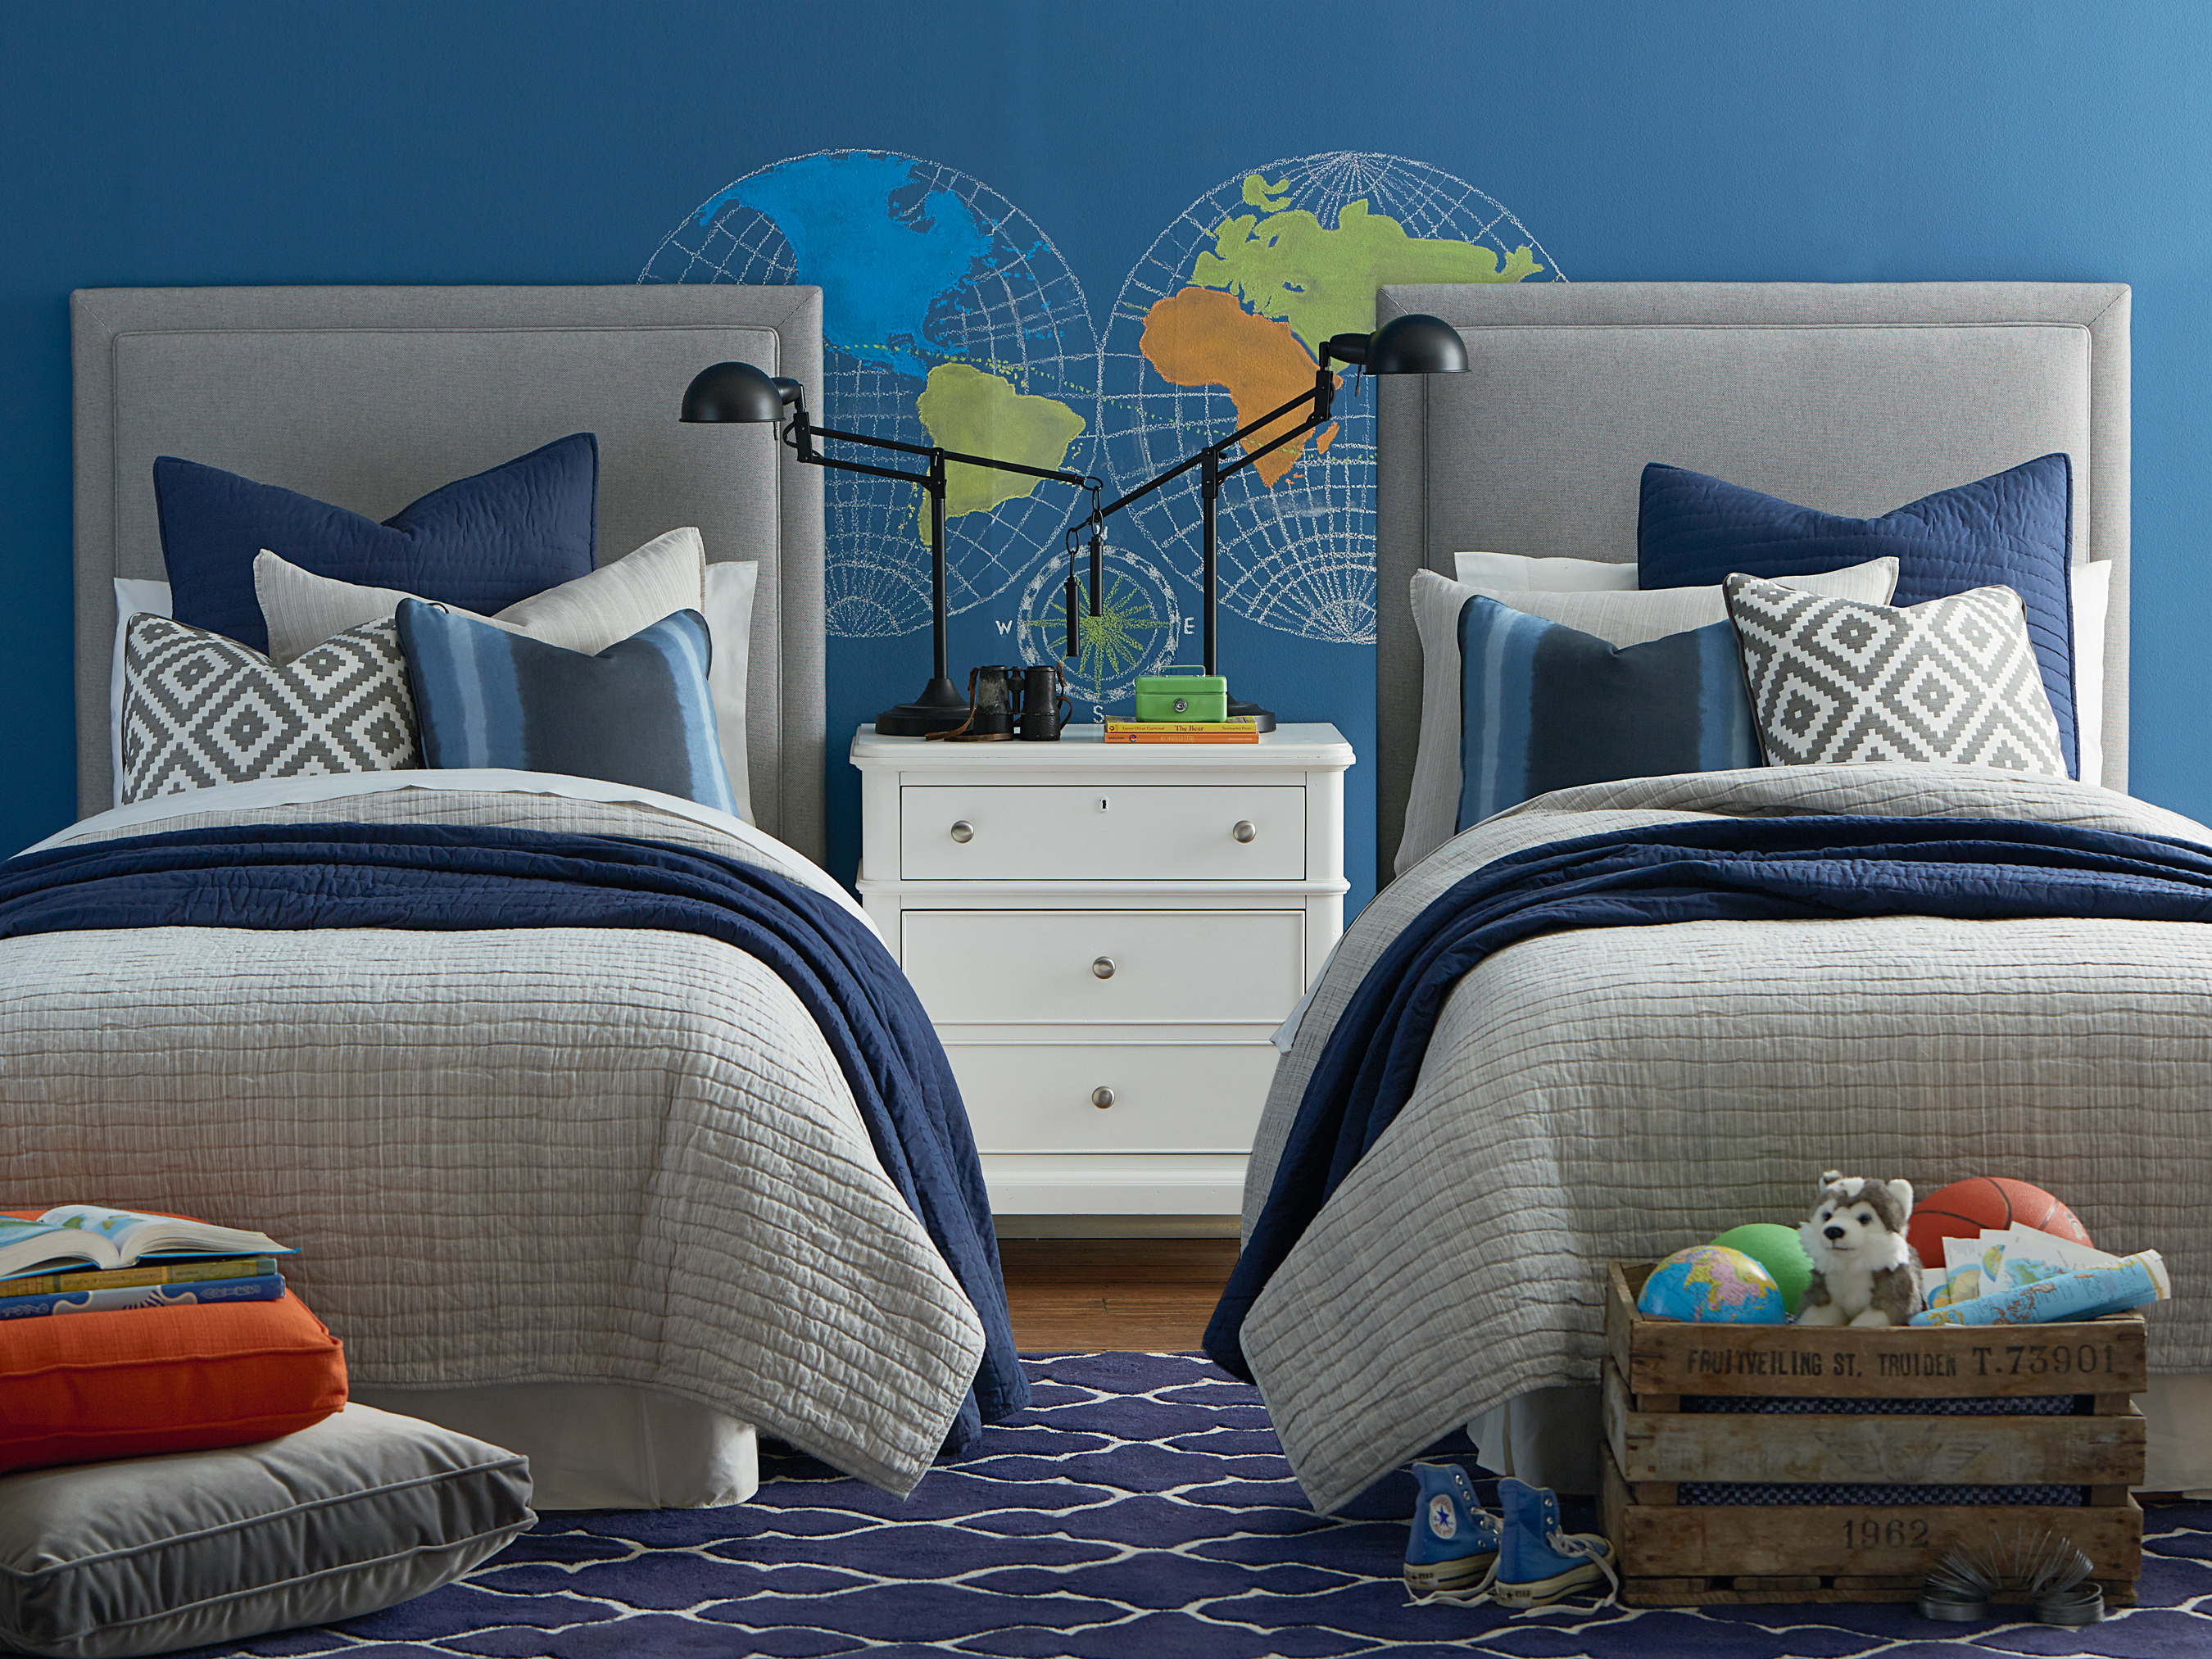 18 Design Ideas to Make Kids' Rooms Look Amazing | Design by GAHS Blog